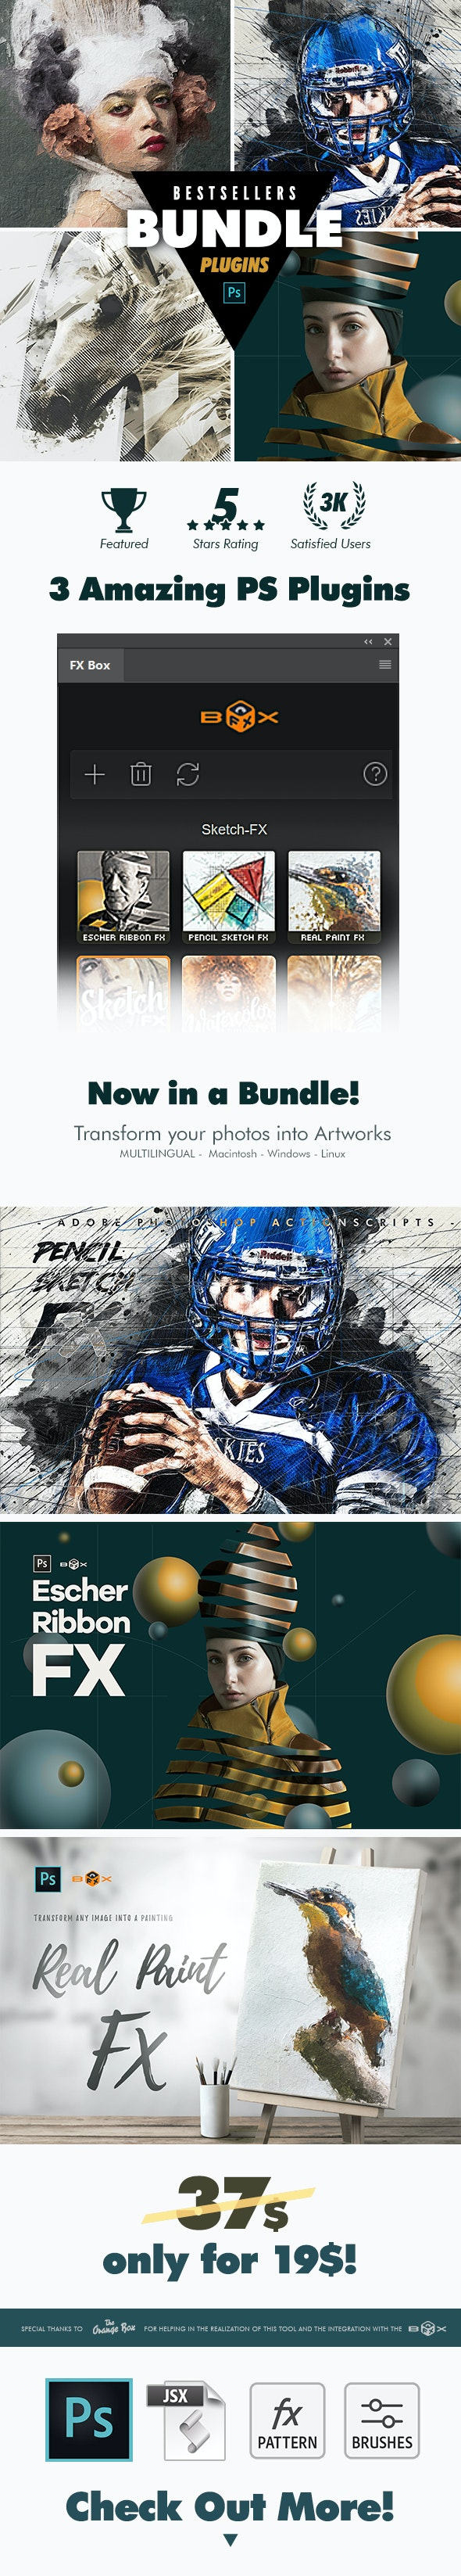 New BestSellers Plugins Bundle - Photo Effects Actions